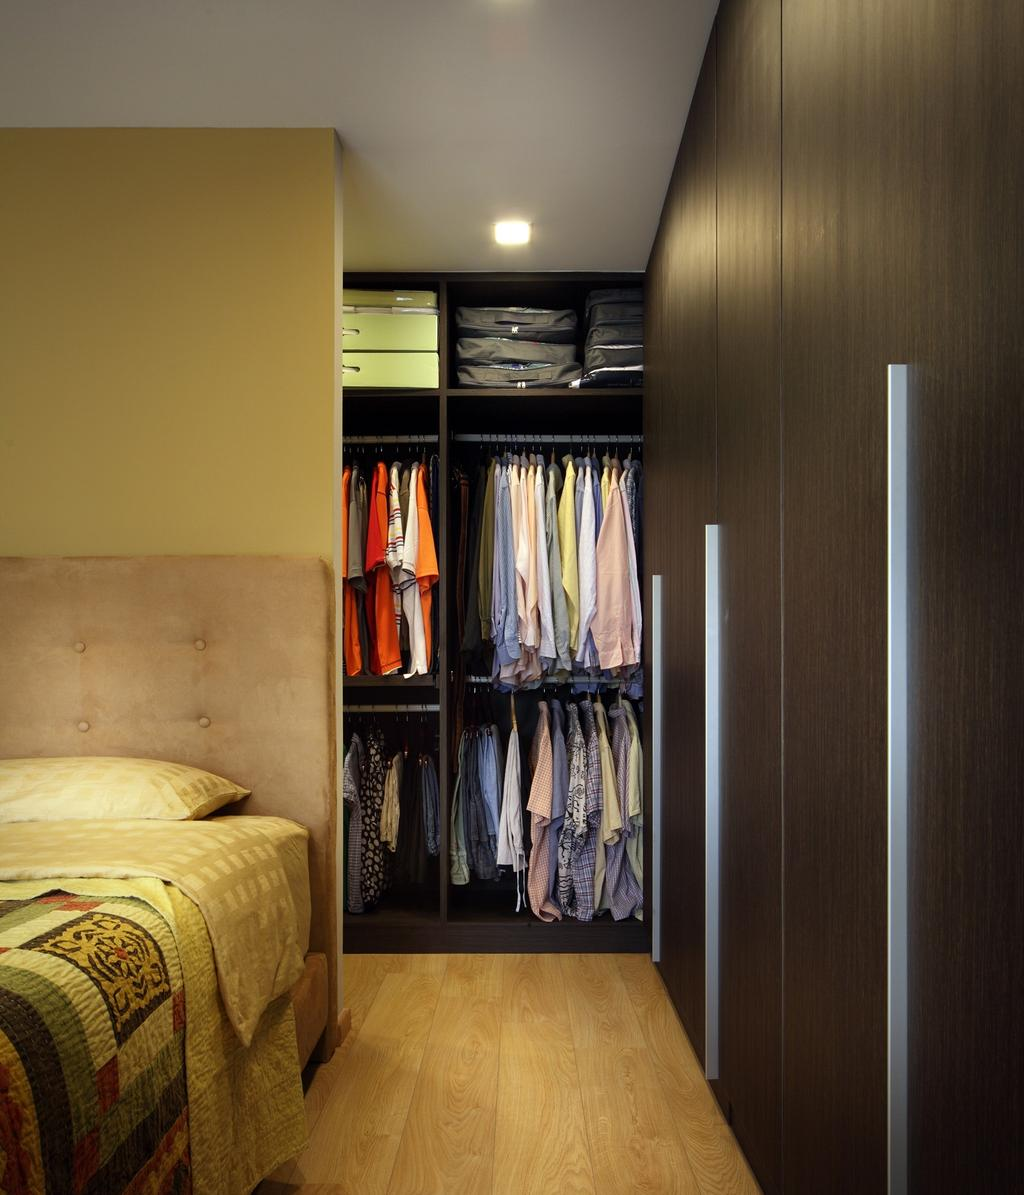 Transitional, HDB, Bedroom, Tampines Street 47, Interior Designer, Chapter One Interior Design, Master Bedroom, Walk In Wardrobe, Racks, Shelf, Shelves, Wardrobe, Closet, Parquet, Headboard, Tufted Headboard, Quilted Headboard, Furniture, Clothing, Denim, Jeans, Pants